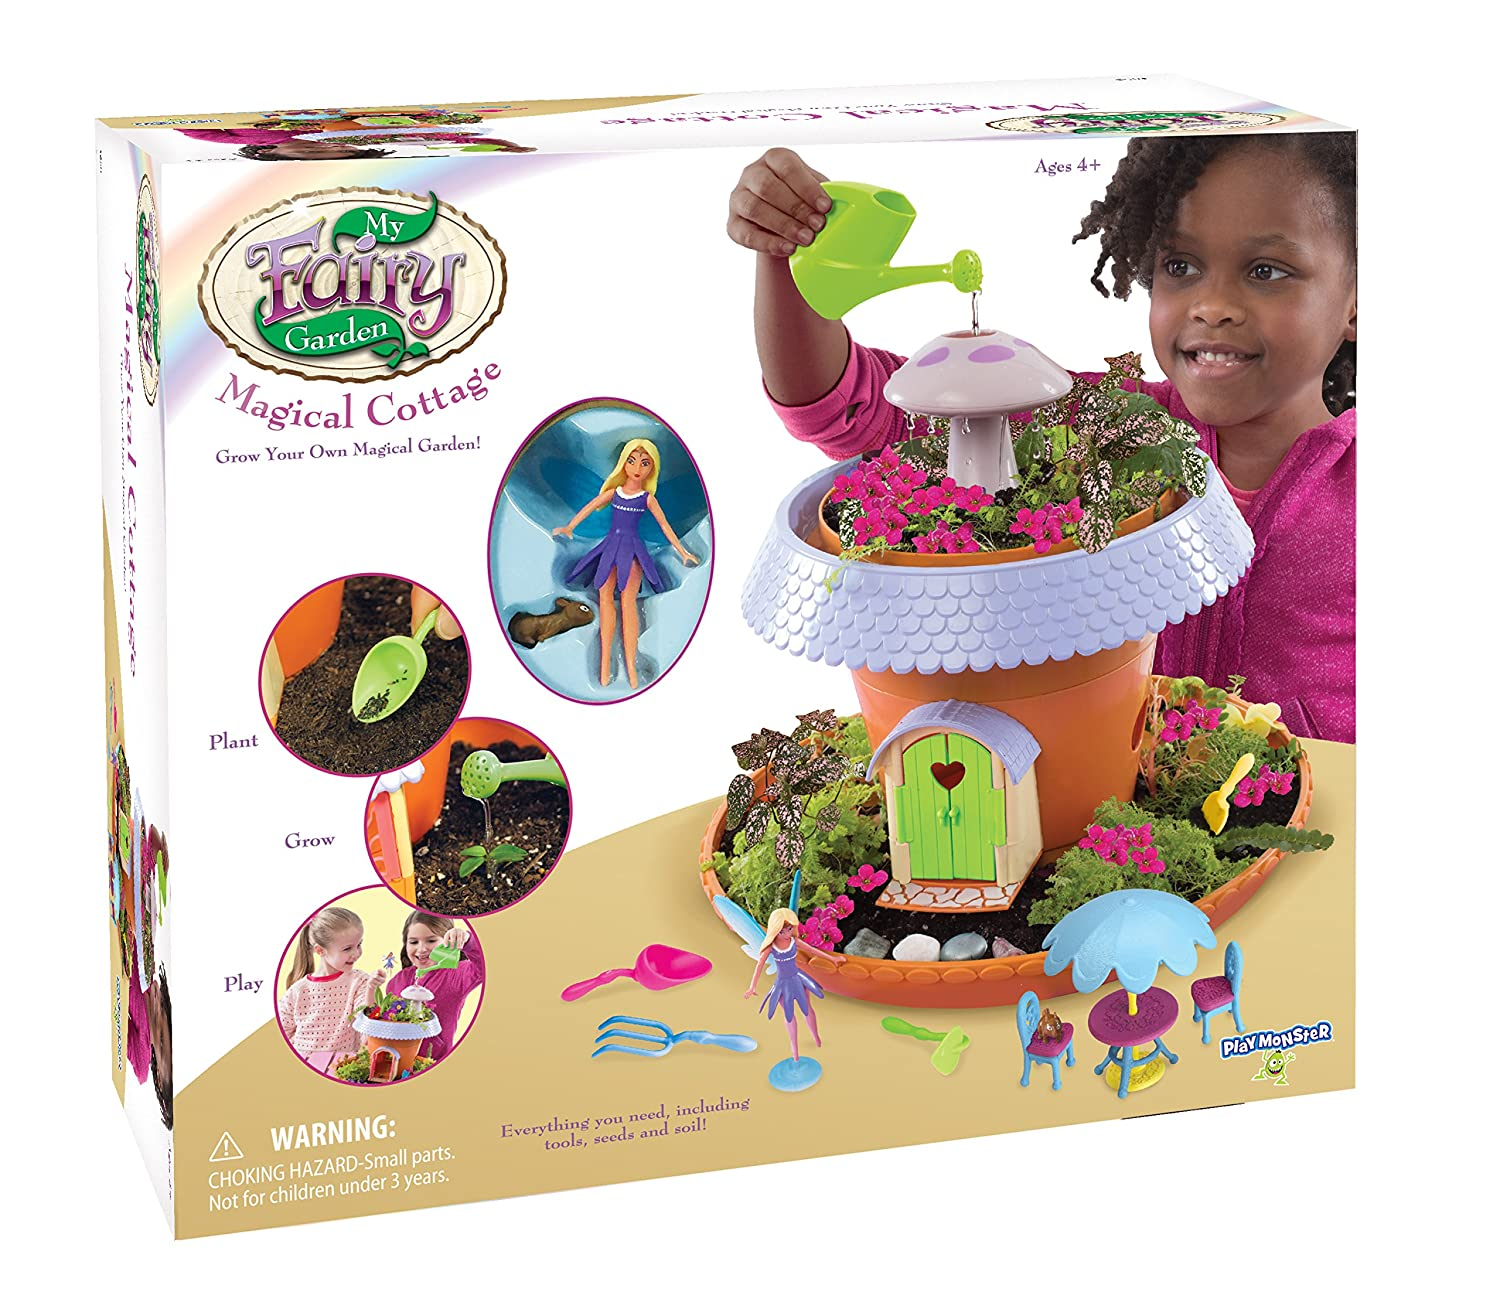 My Fairy Garden Magical Cottage Playset